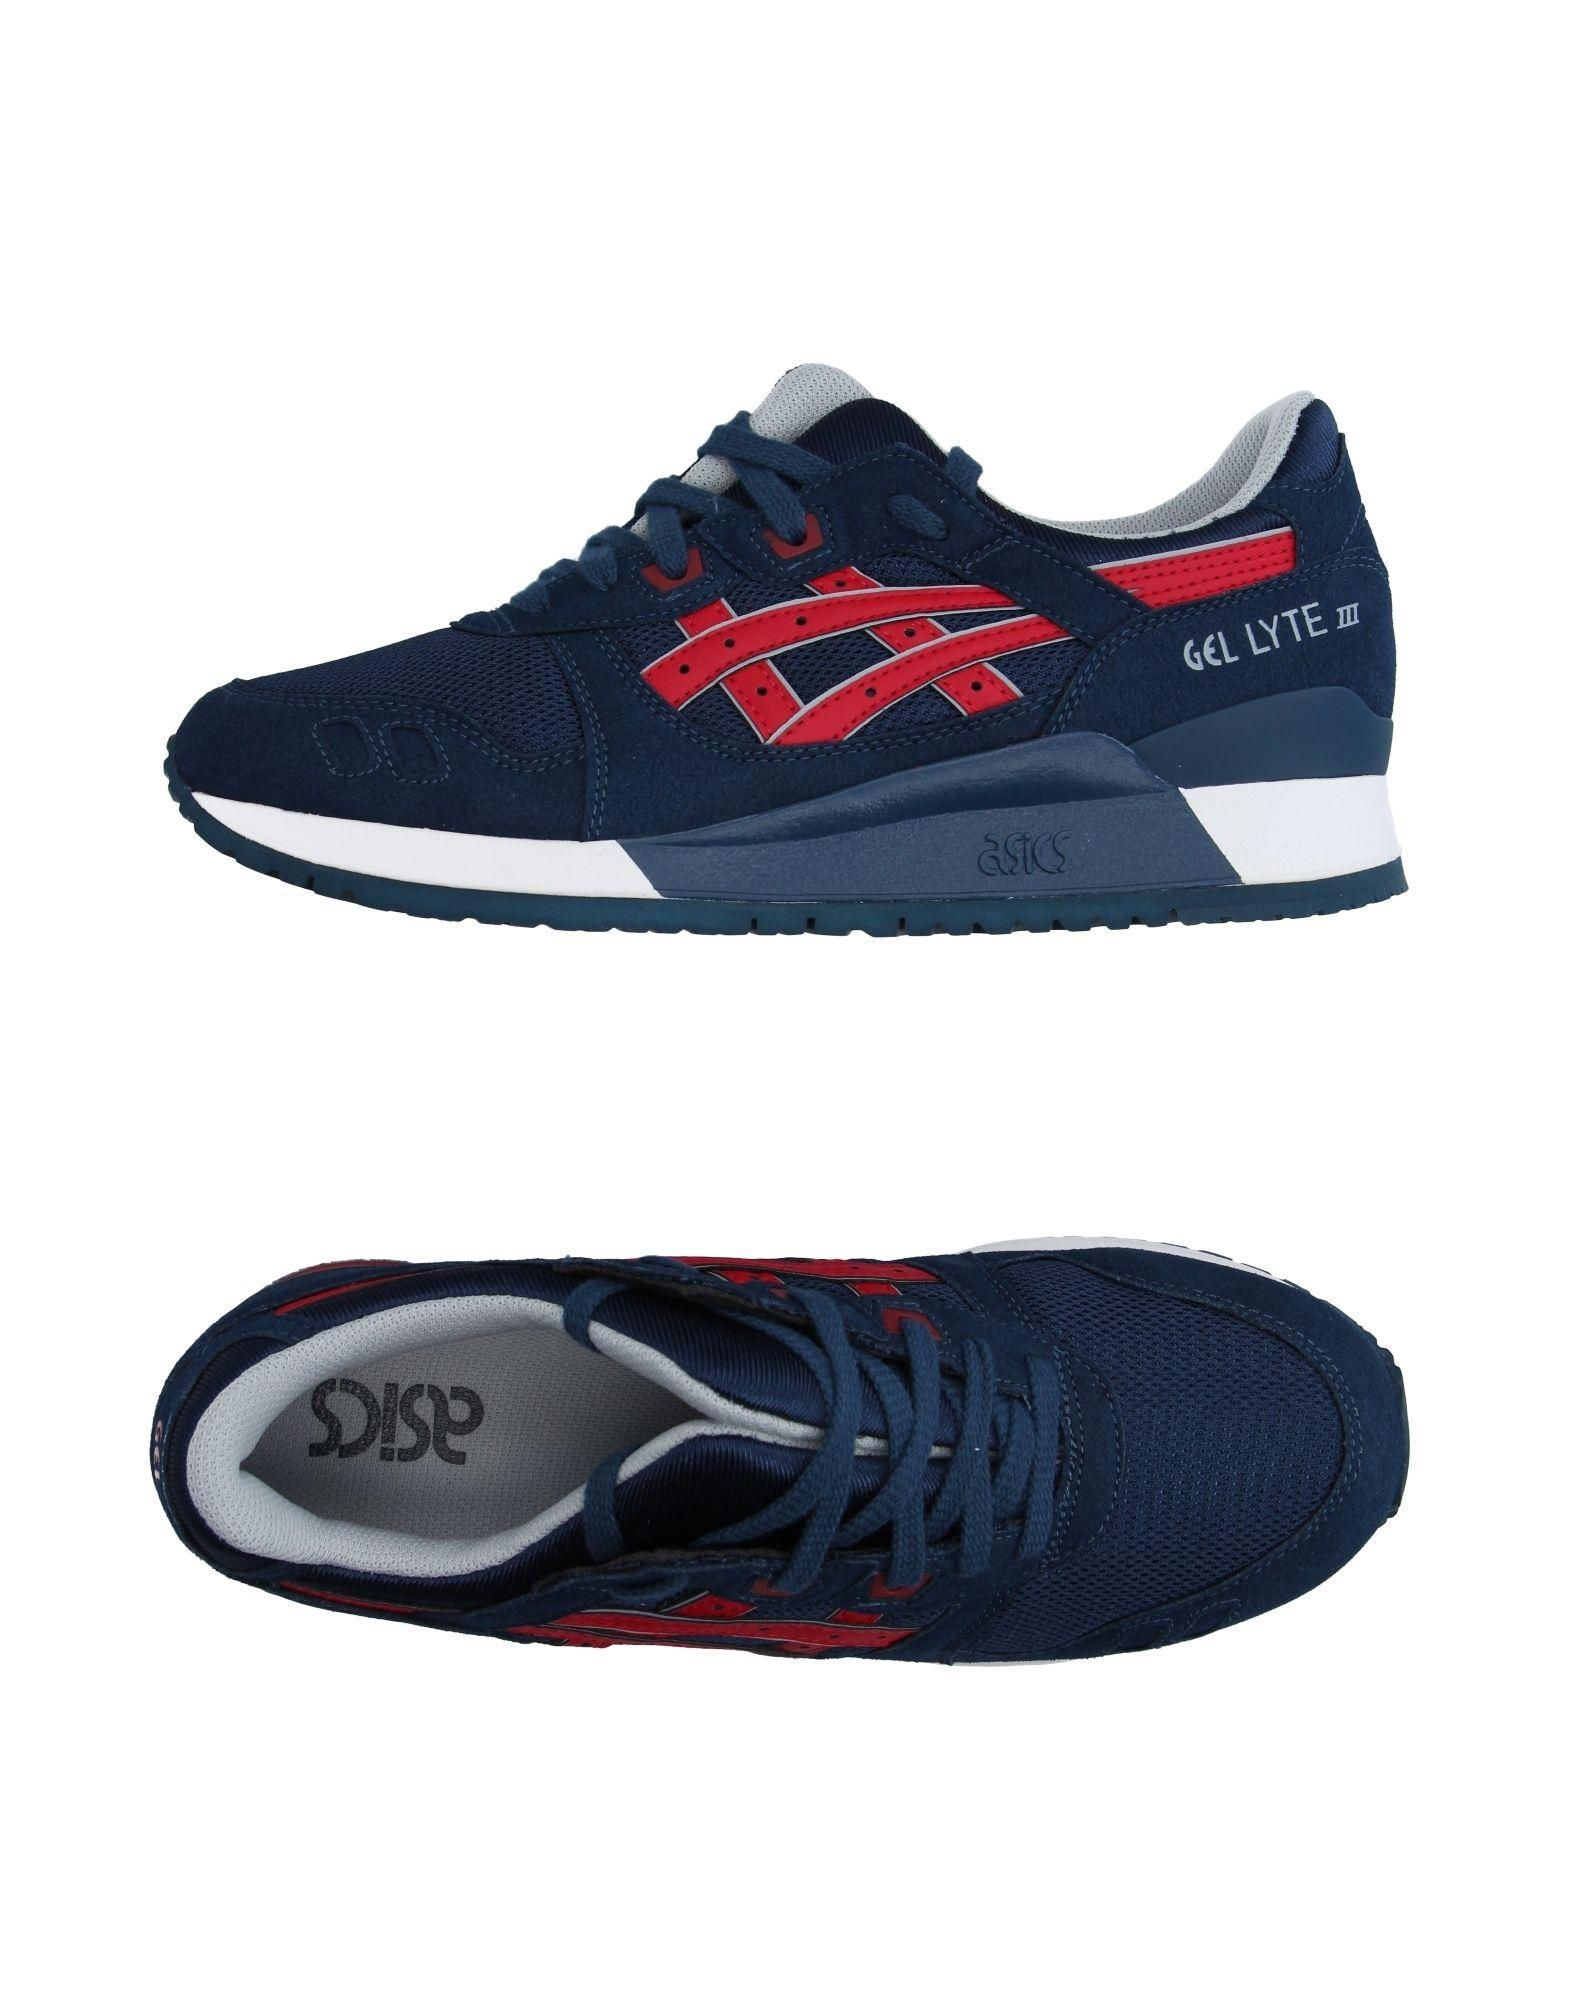 Are Asics Flat Rubber Sole Shoes